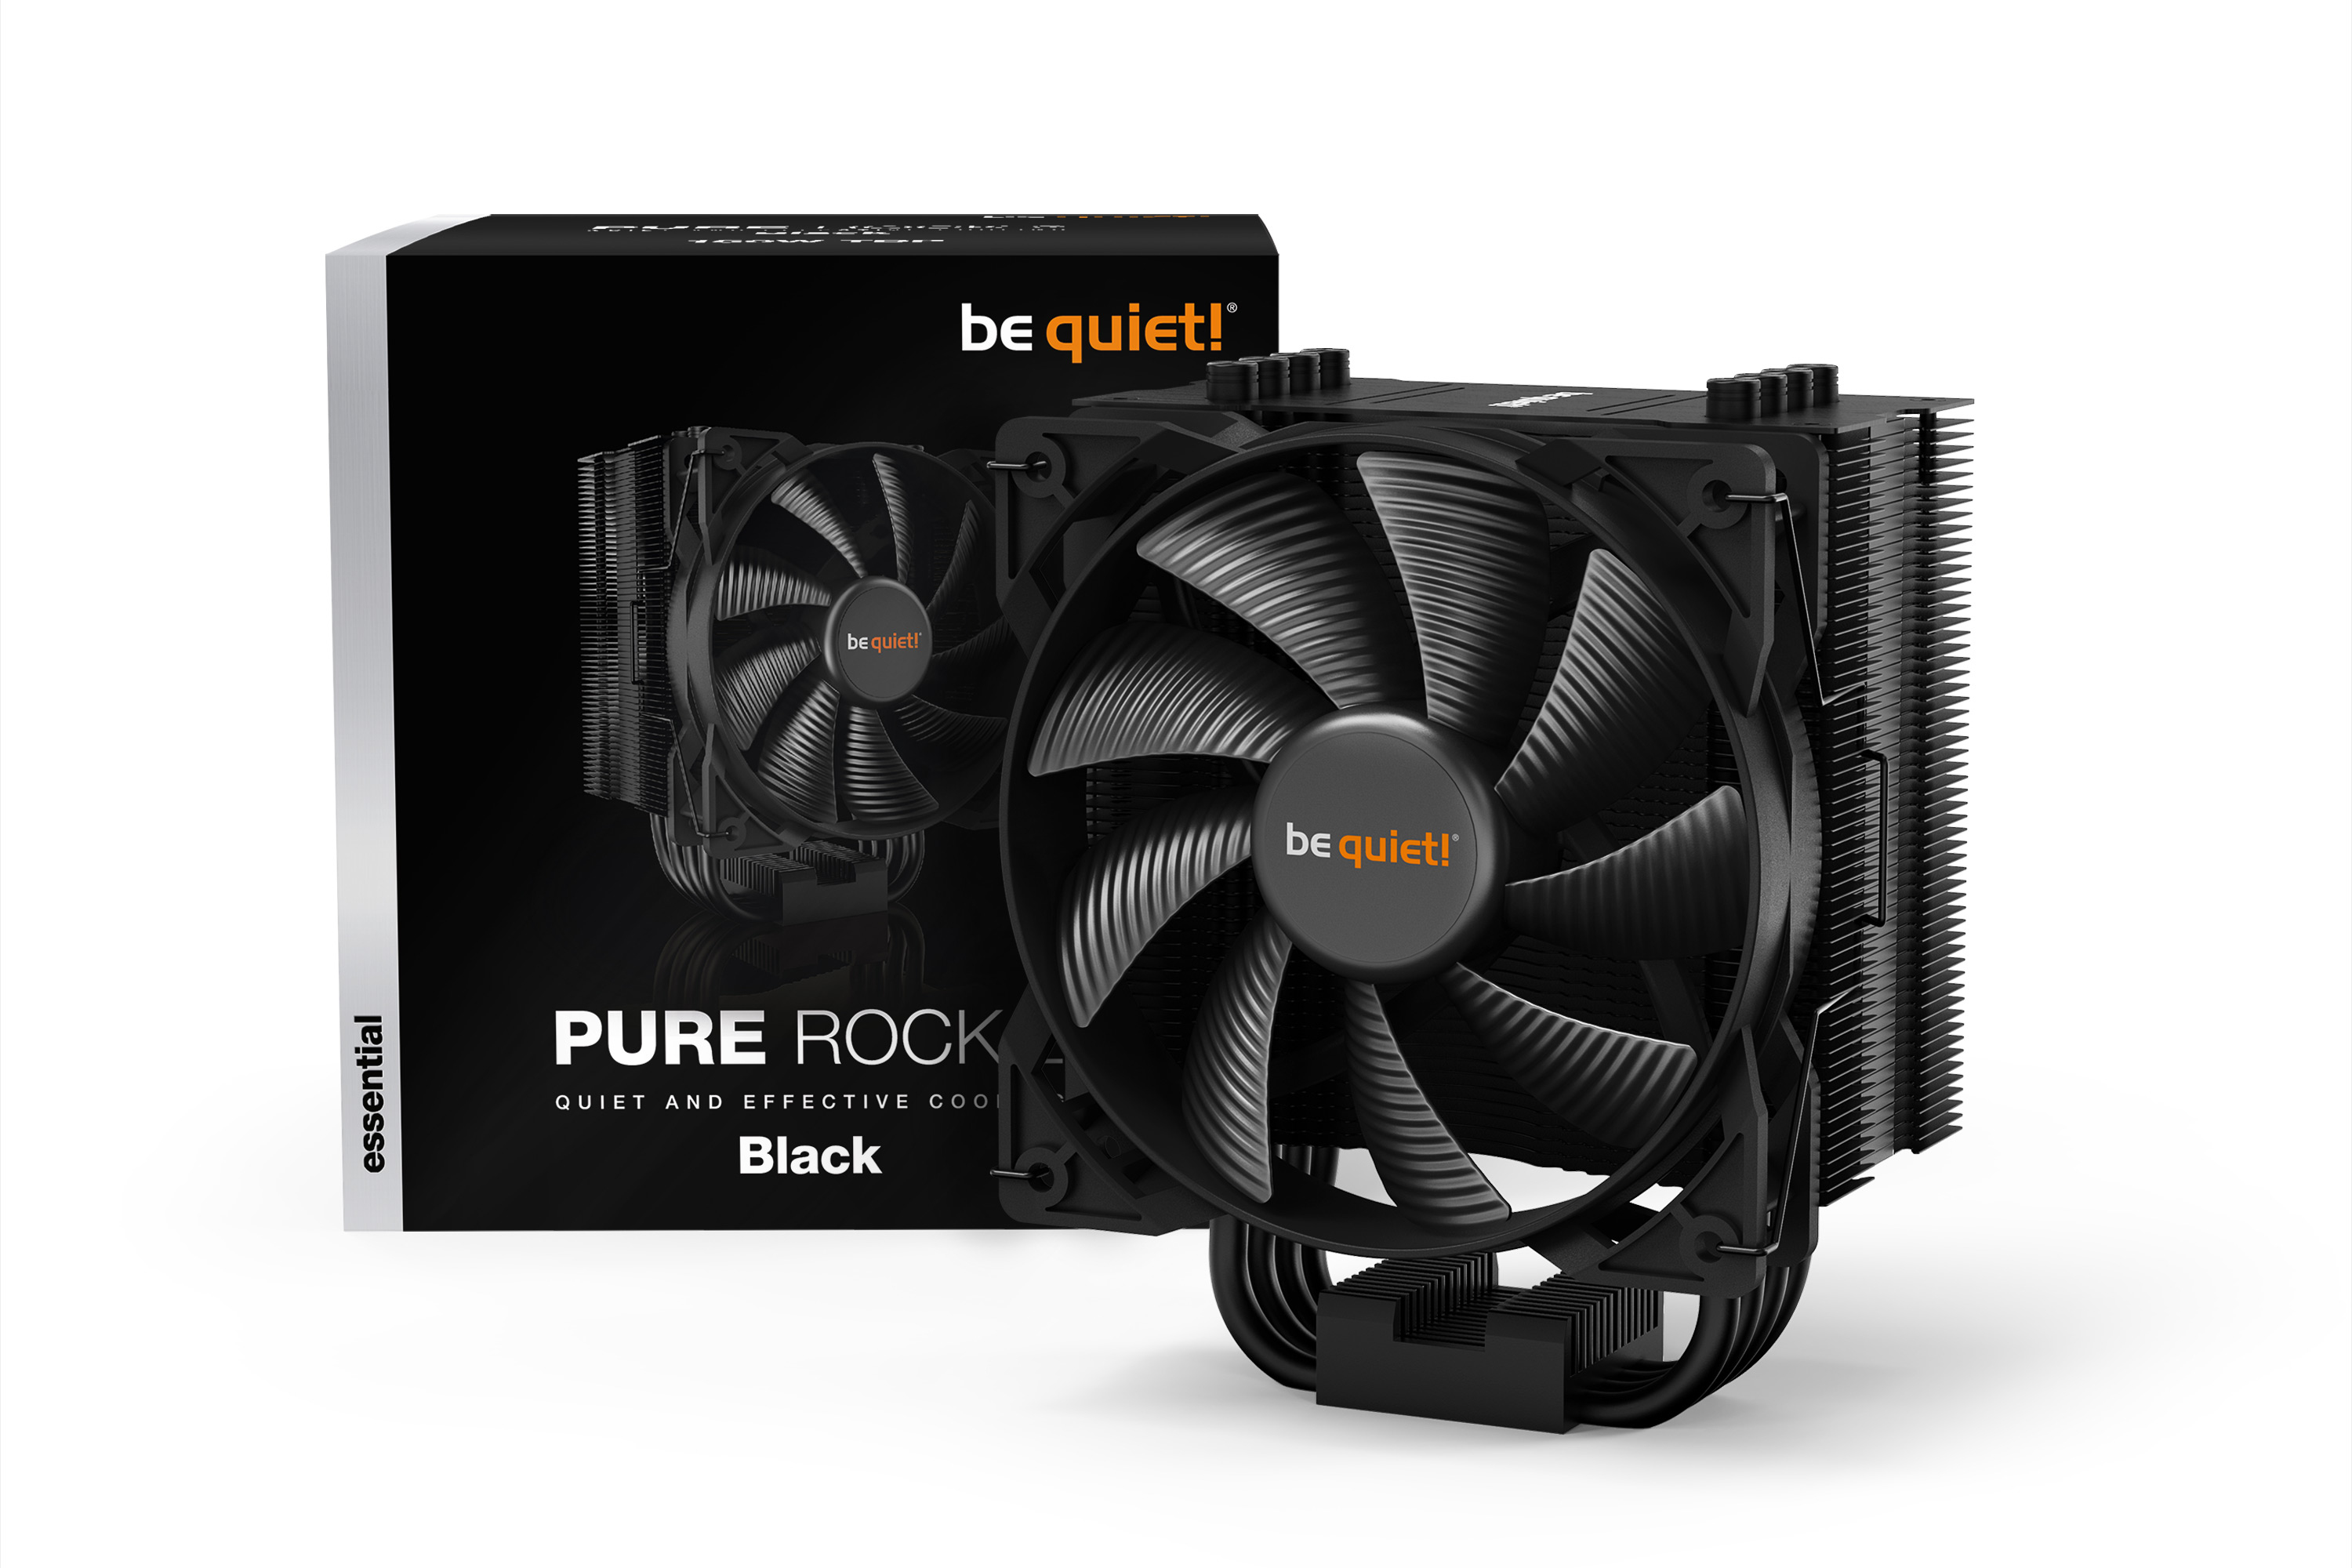 be quiet! Pure Rock 2 Black, 150W TDP, Intel: 1200 / 2066 / 1150 / 1151 / 1155 / 2011(-3) Square ILM, AMD: AM4 / AM3(+), 4 pin PWM, (87mm L x 121mm W x 155 mm H)